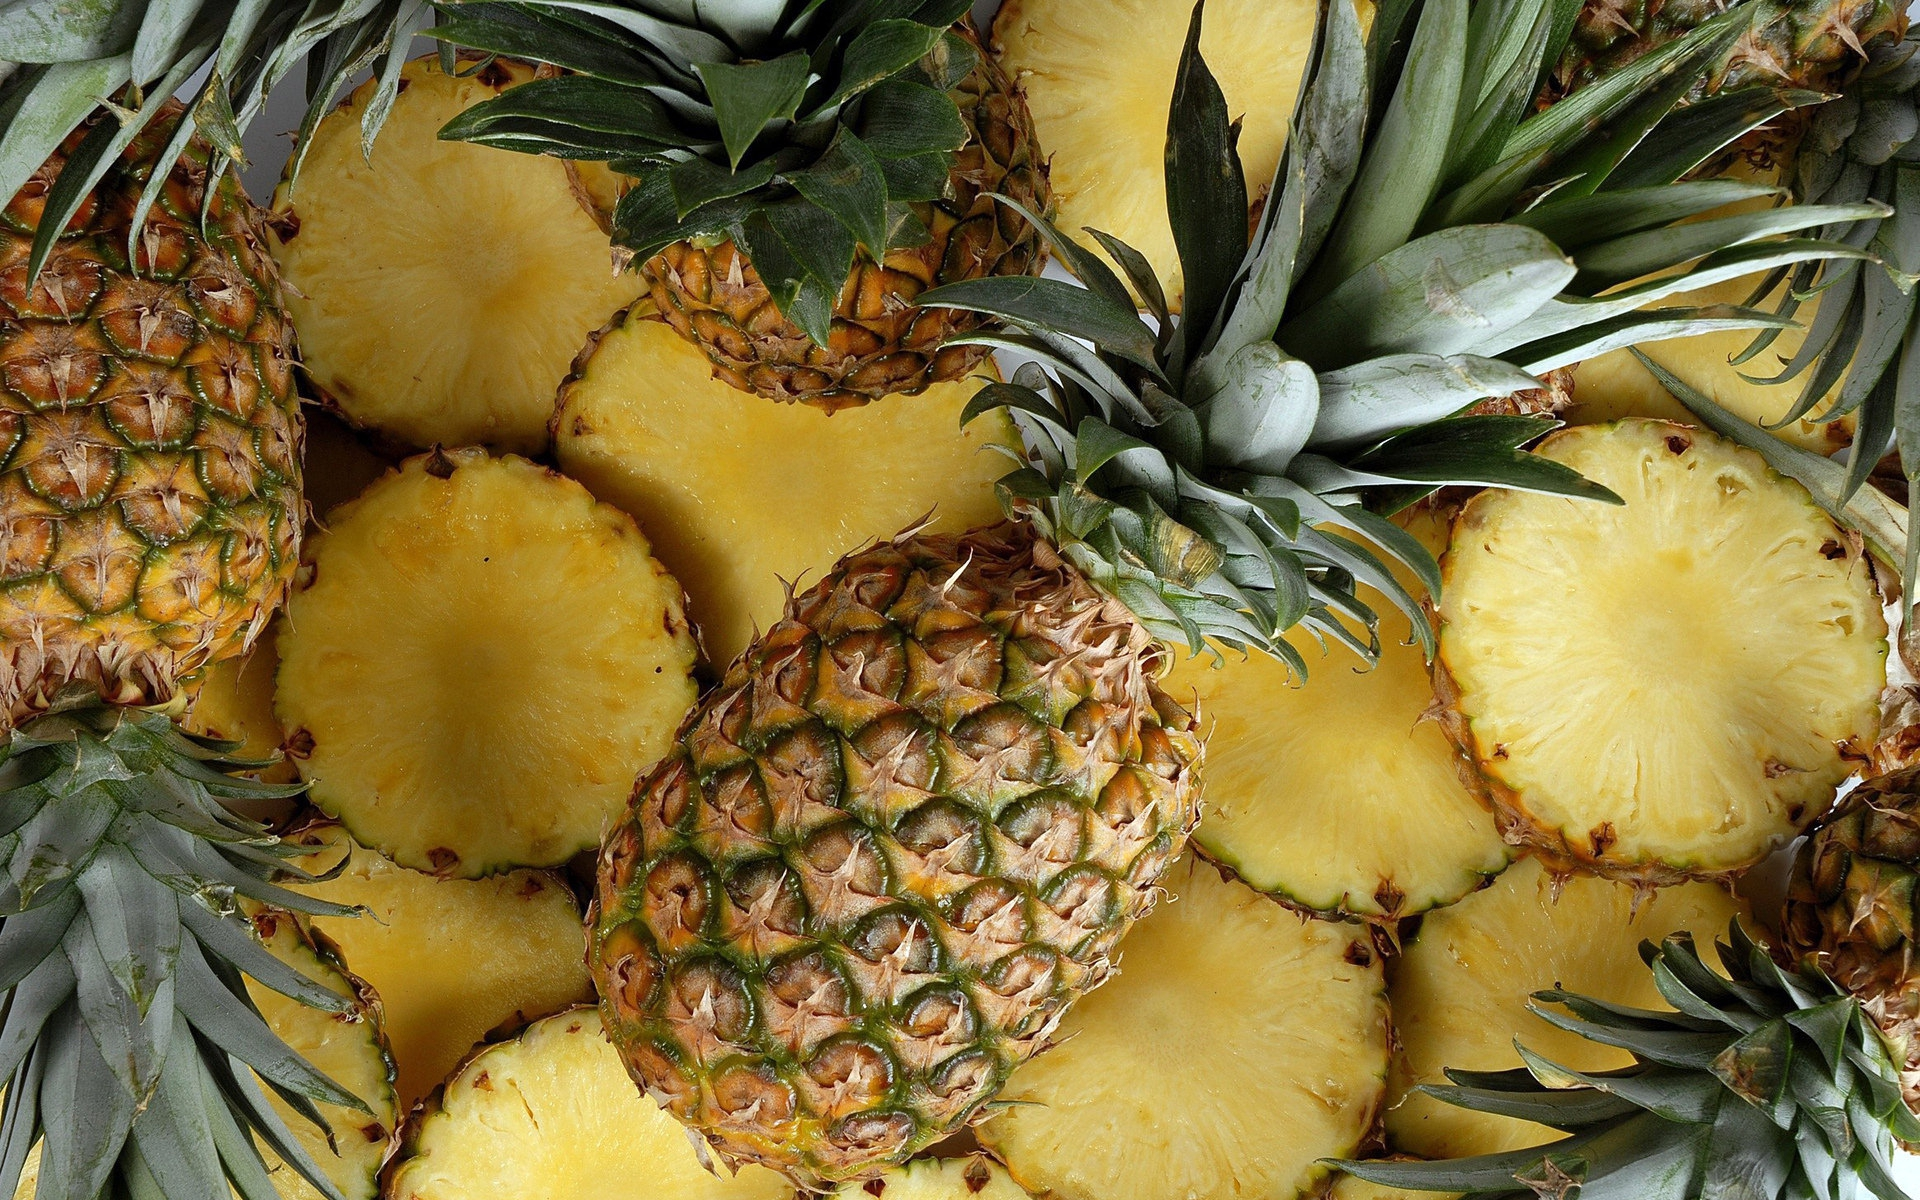 Pictures Of Pineapple